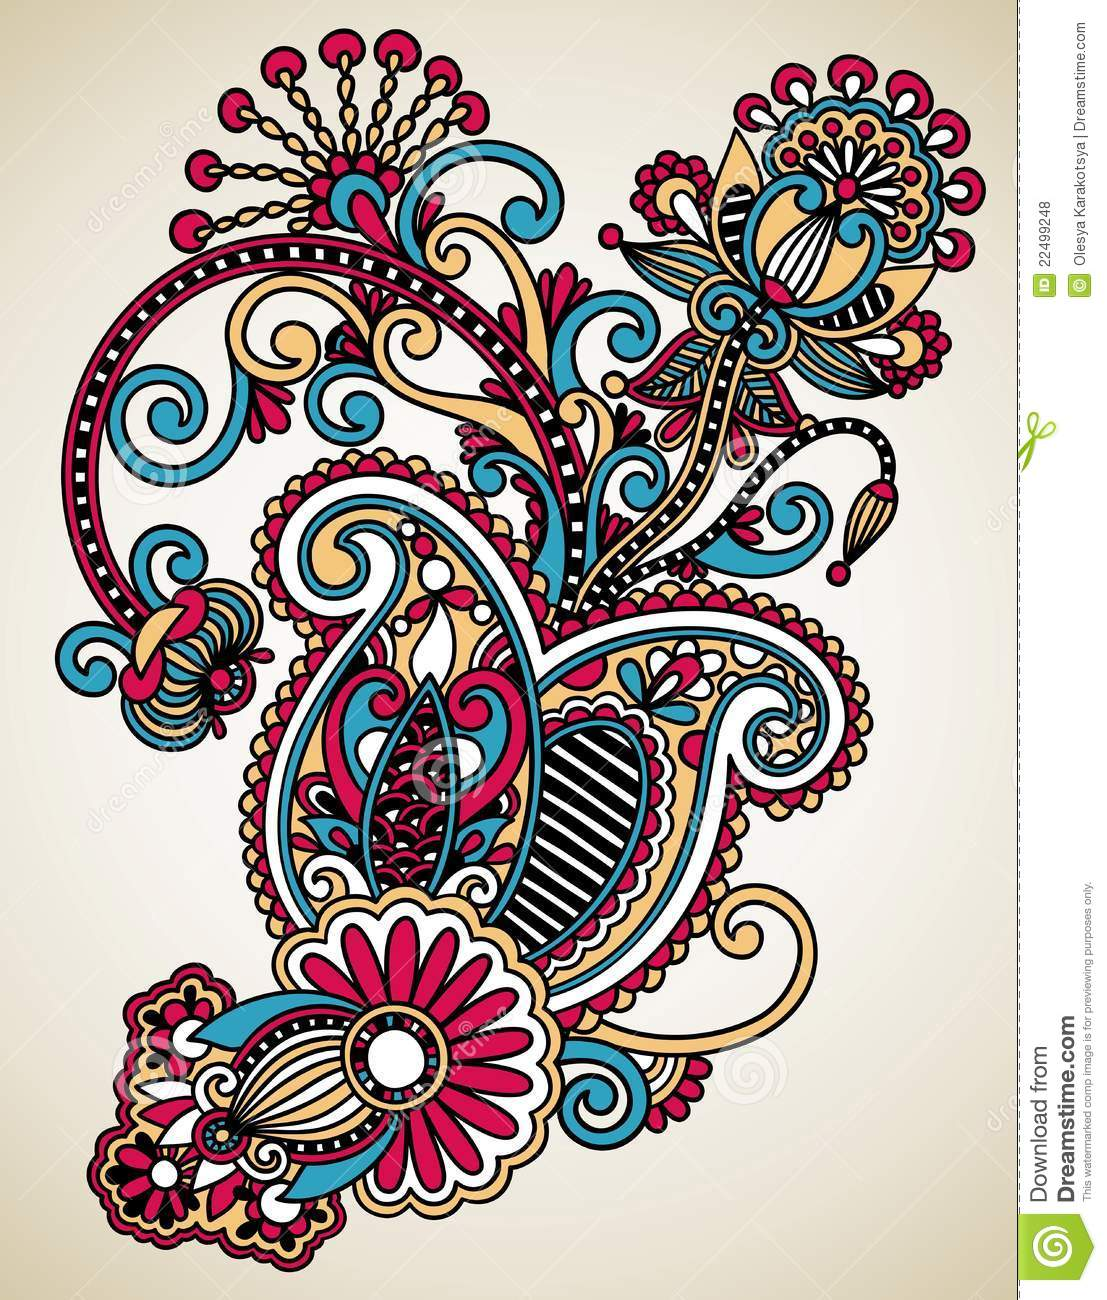 Line Art Aplic Flower Design : Flower artwork design inspiration